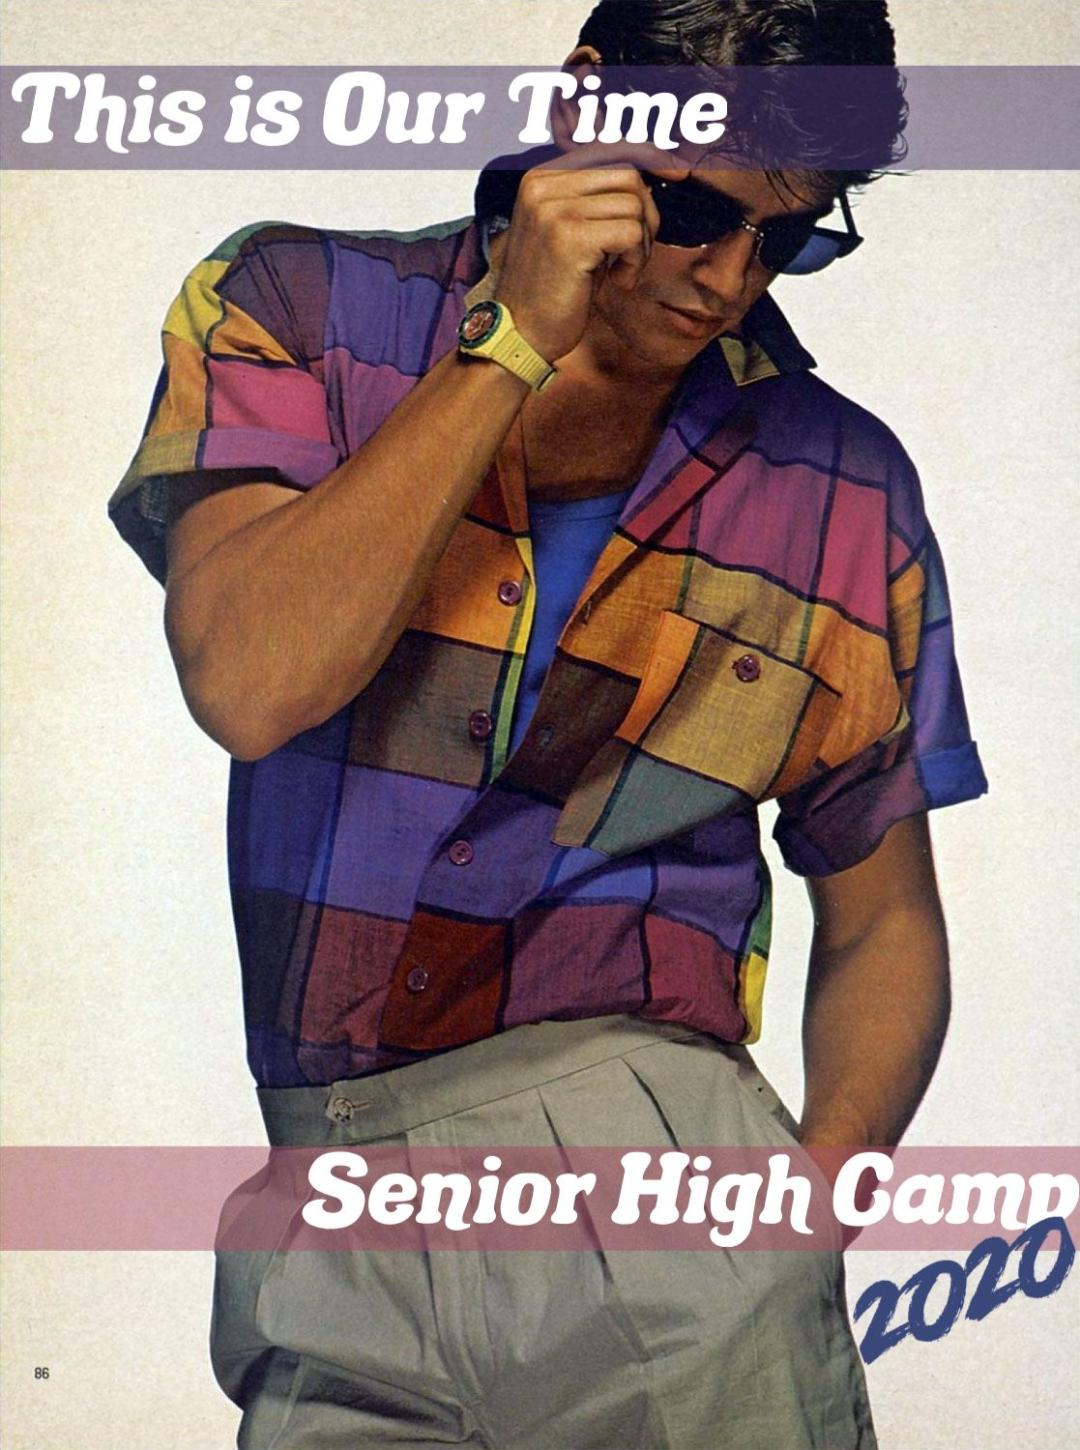 Senior High Camp